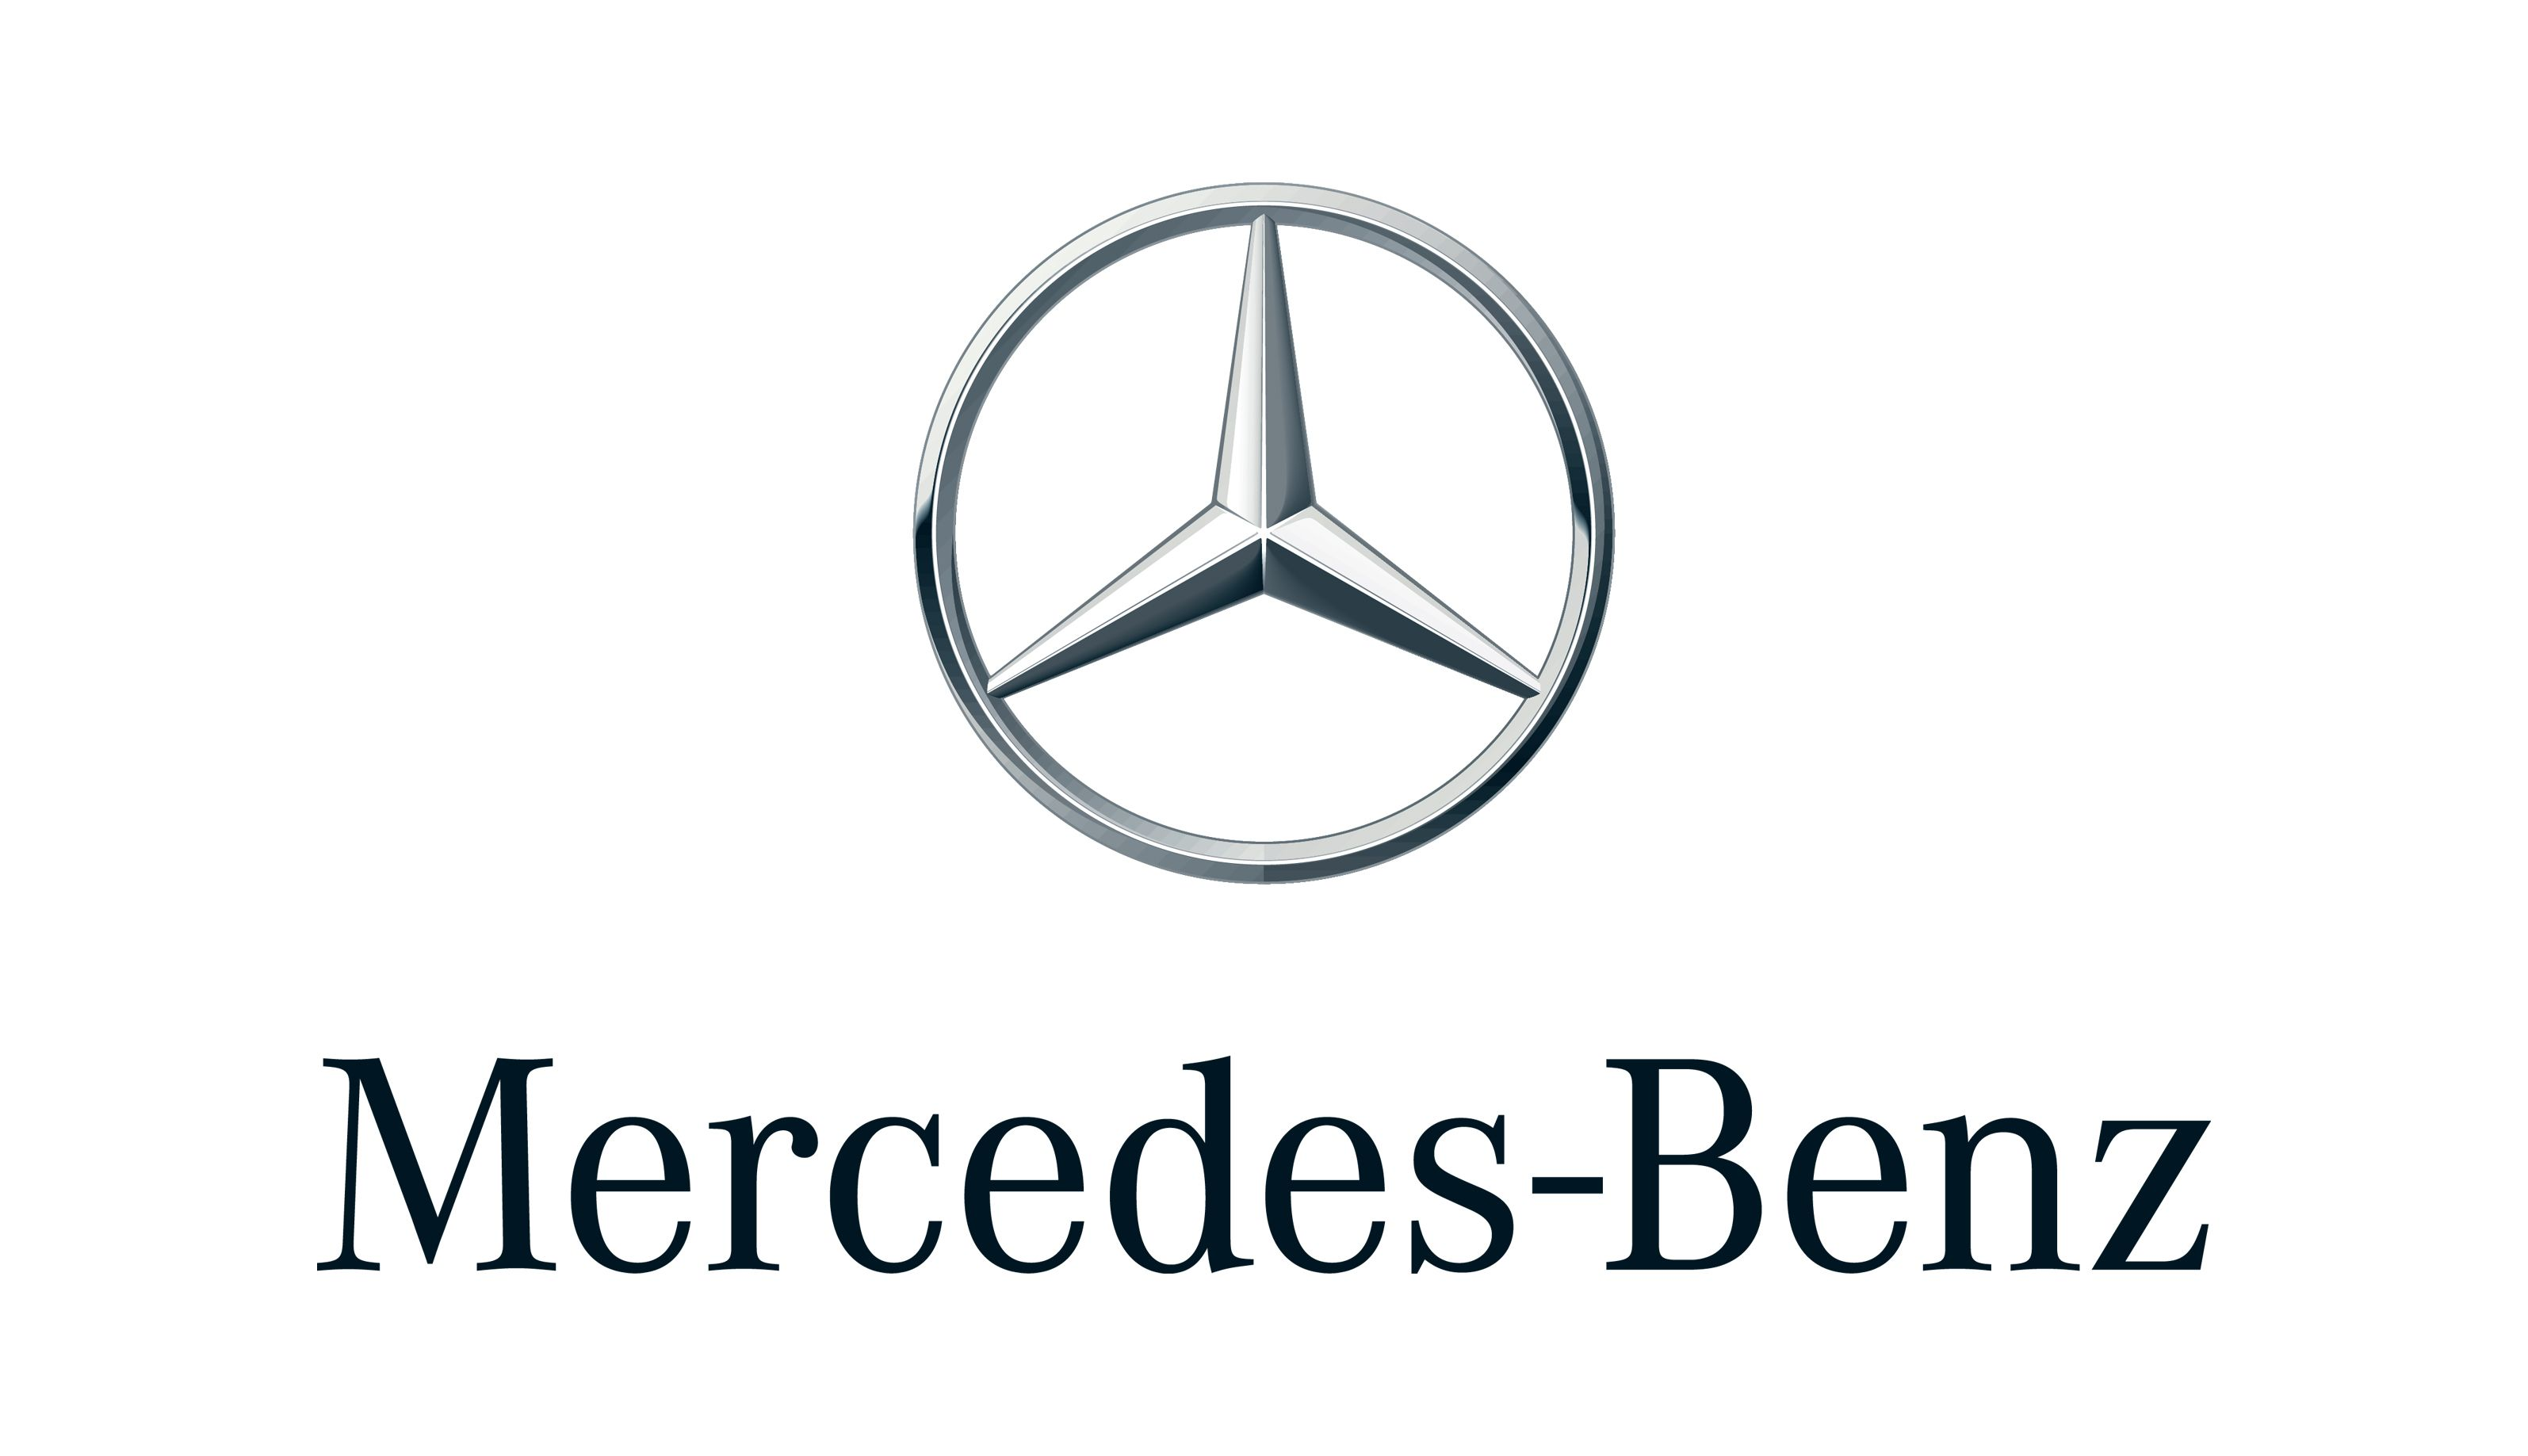 Did you know the three point star logo of mercedes benz the three point star logo of mercedes benz represents the companys voltagebd Image collections